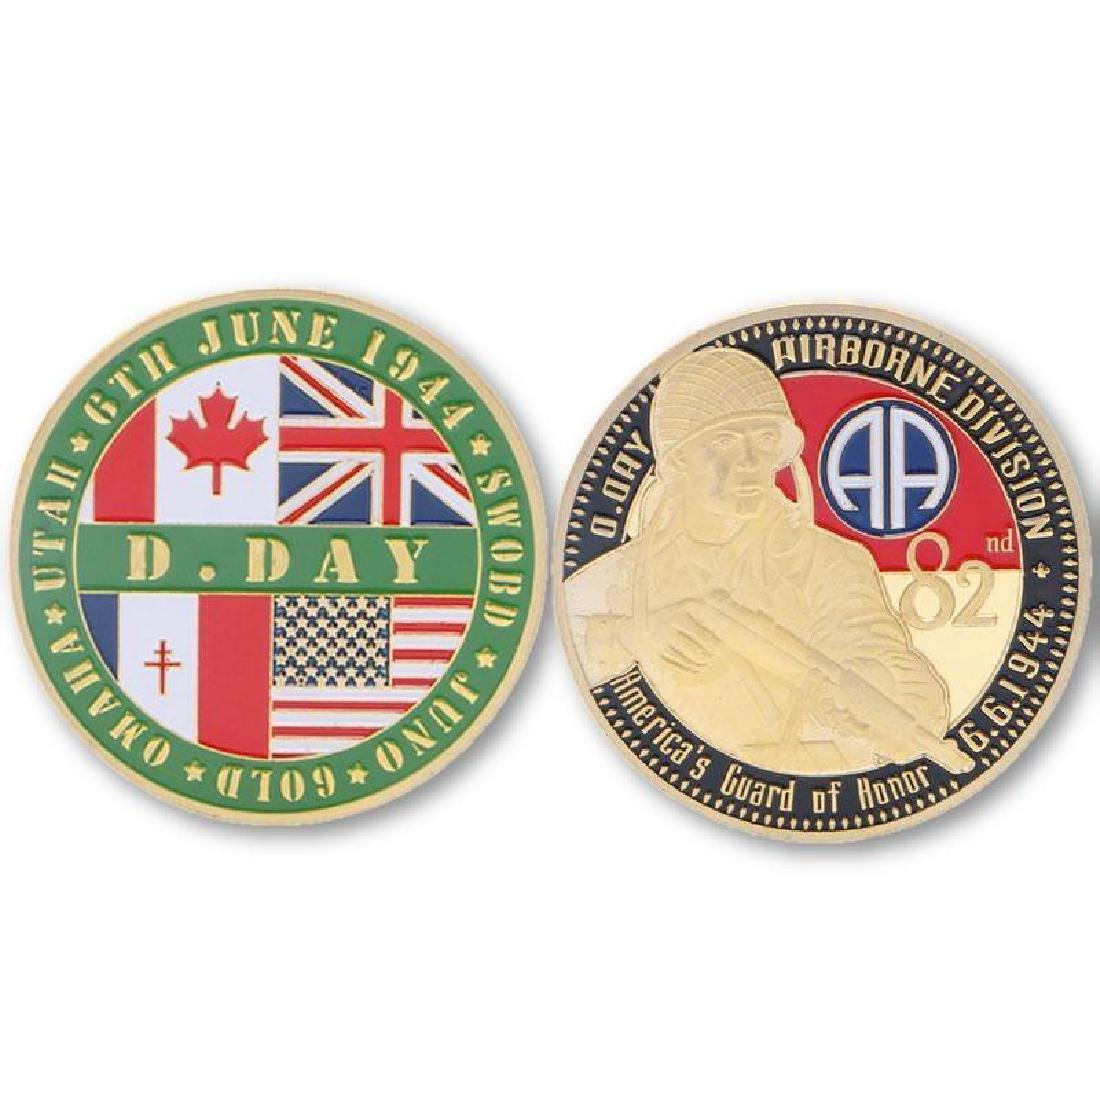 USA 102 Airborne Division Colored Gold Clad Coin